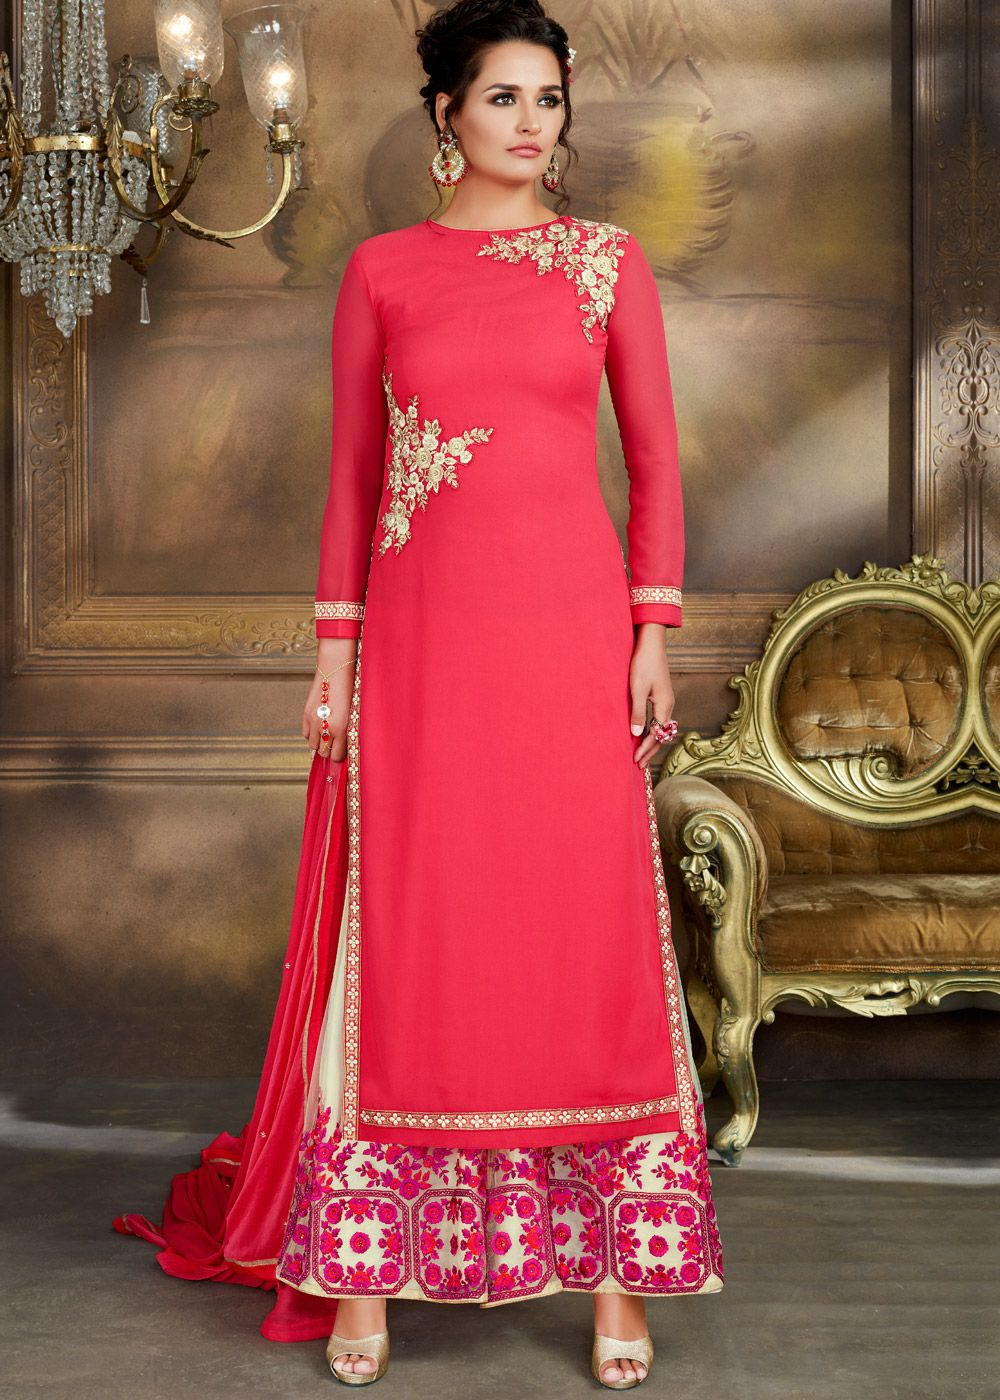 3b35fae53d #Pink straight cut #georgette #kameez with minimal resham embroidery and  lace work.